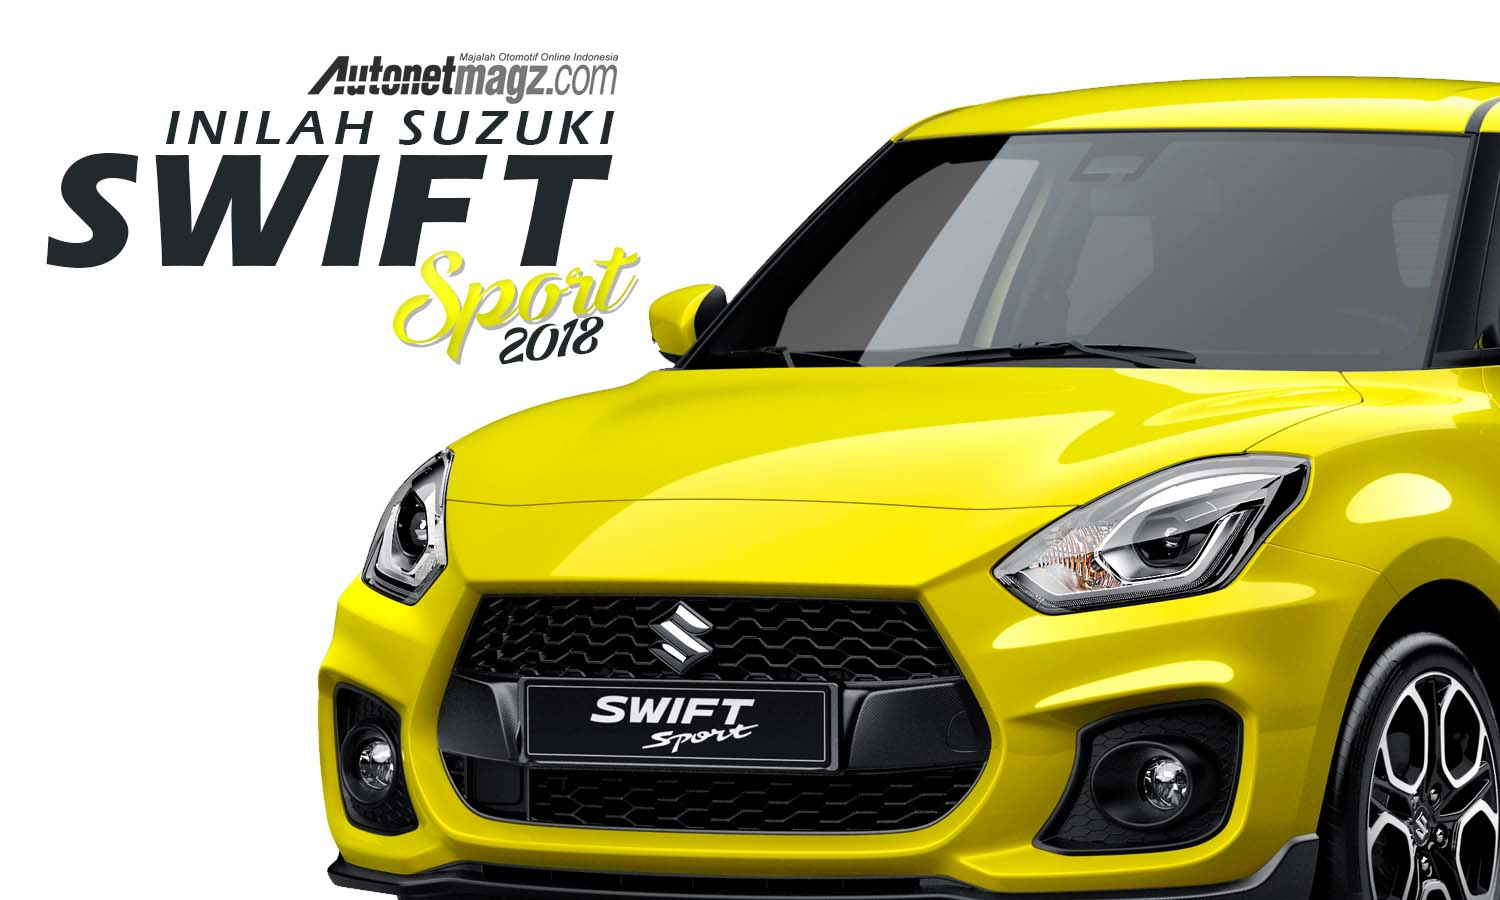 new suzuki swift sport 2018 rilis september mendatang autonetmagz. Black Bedroom Furniture Sets. Home Design Ideas